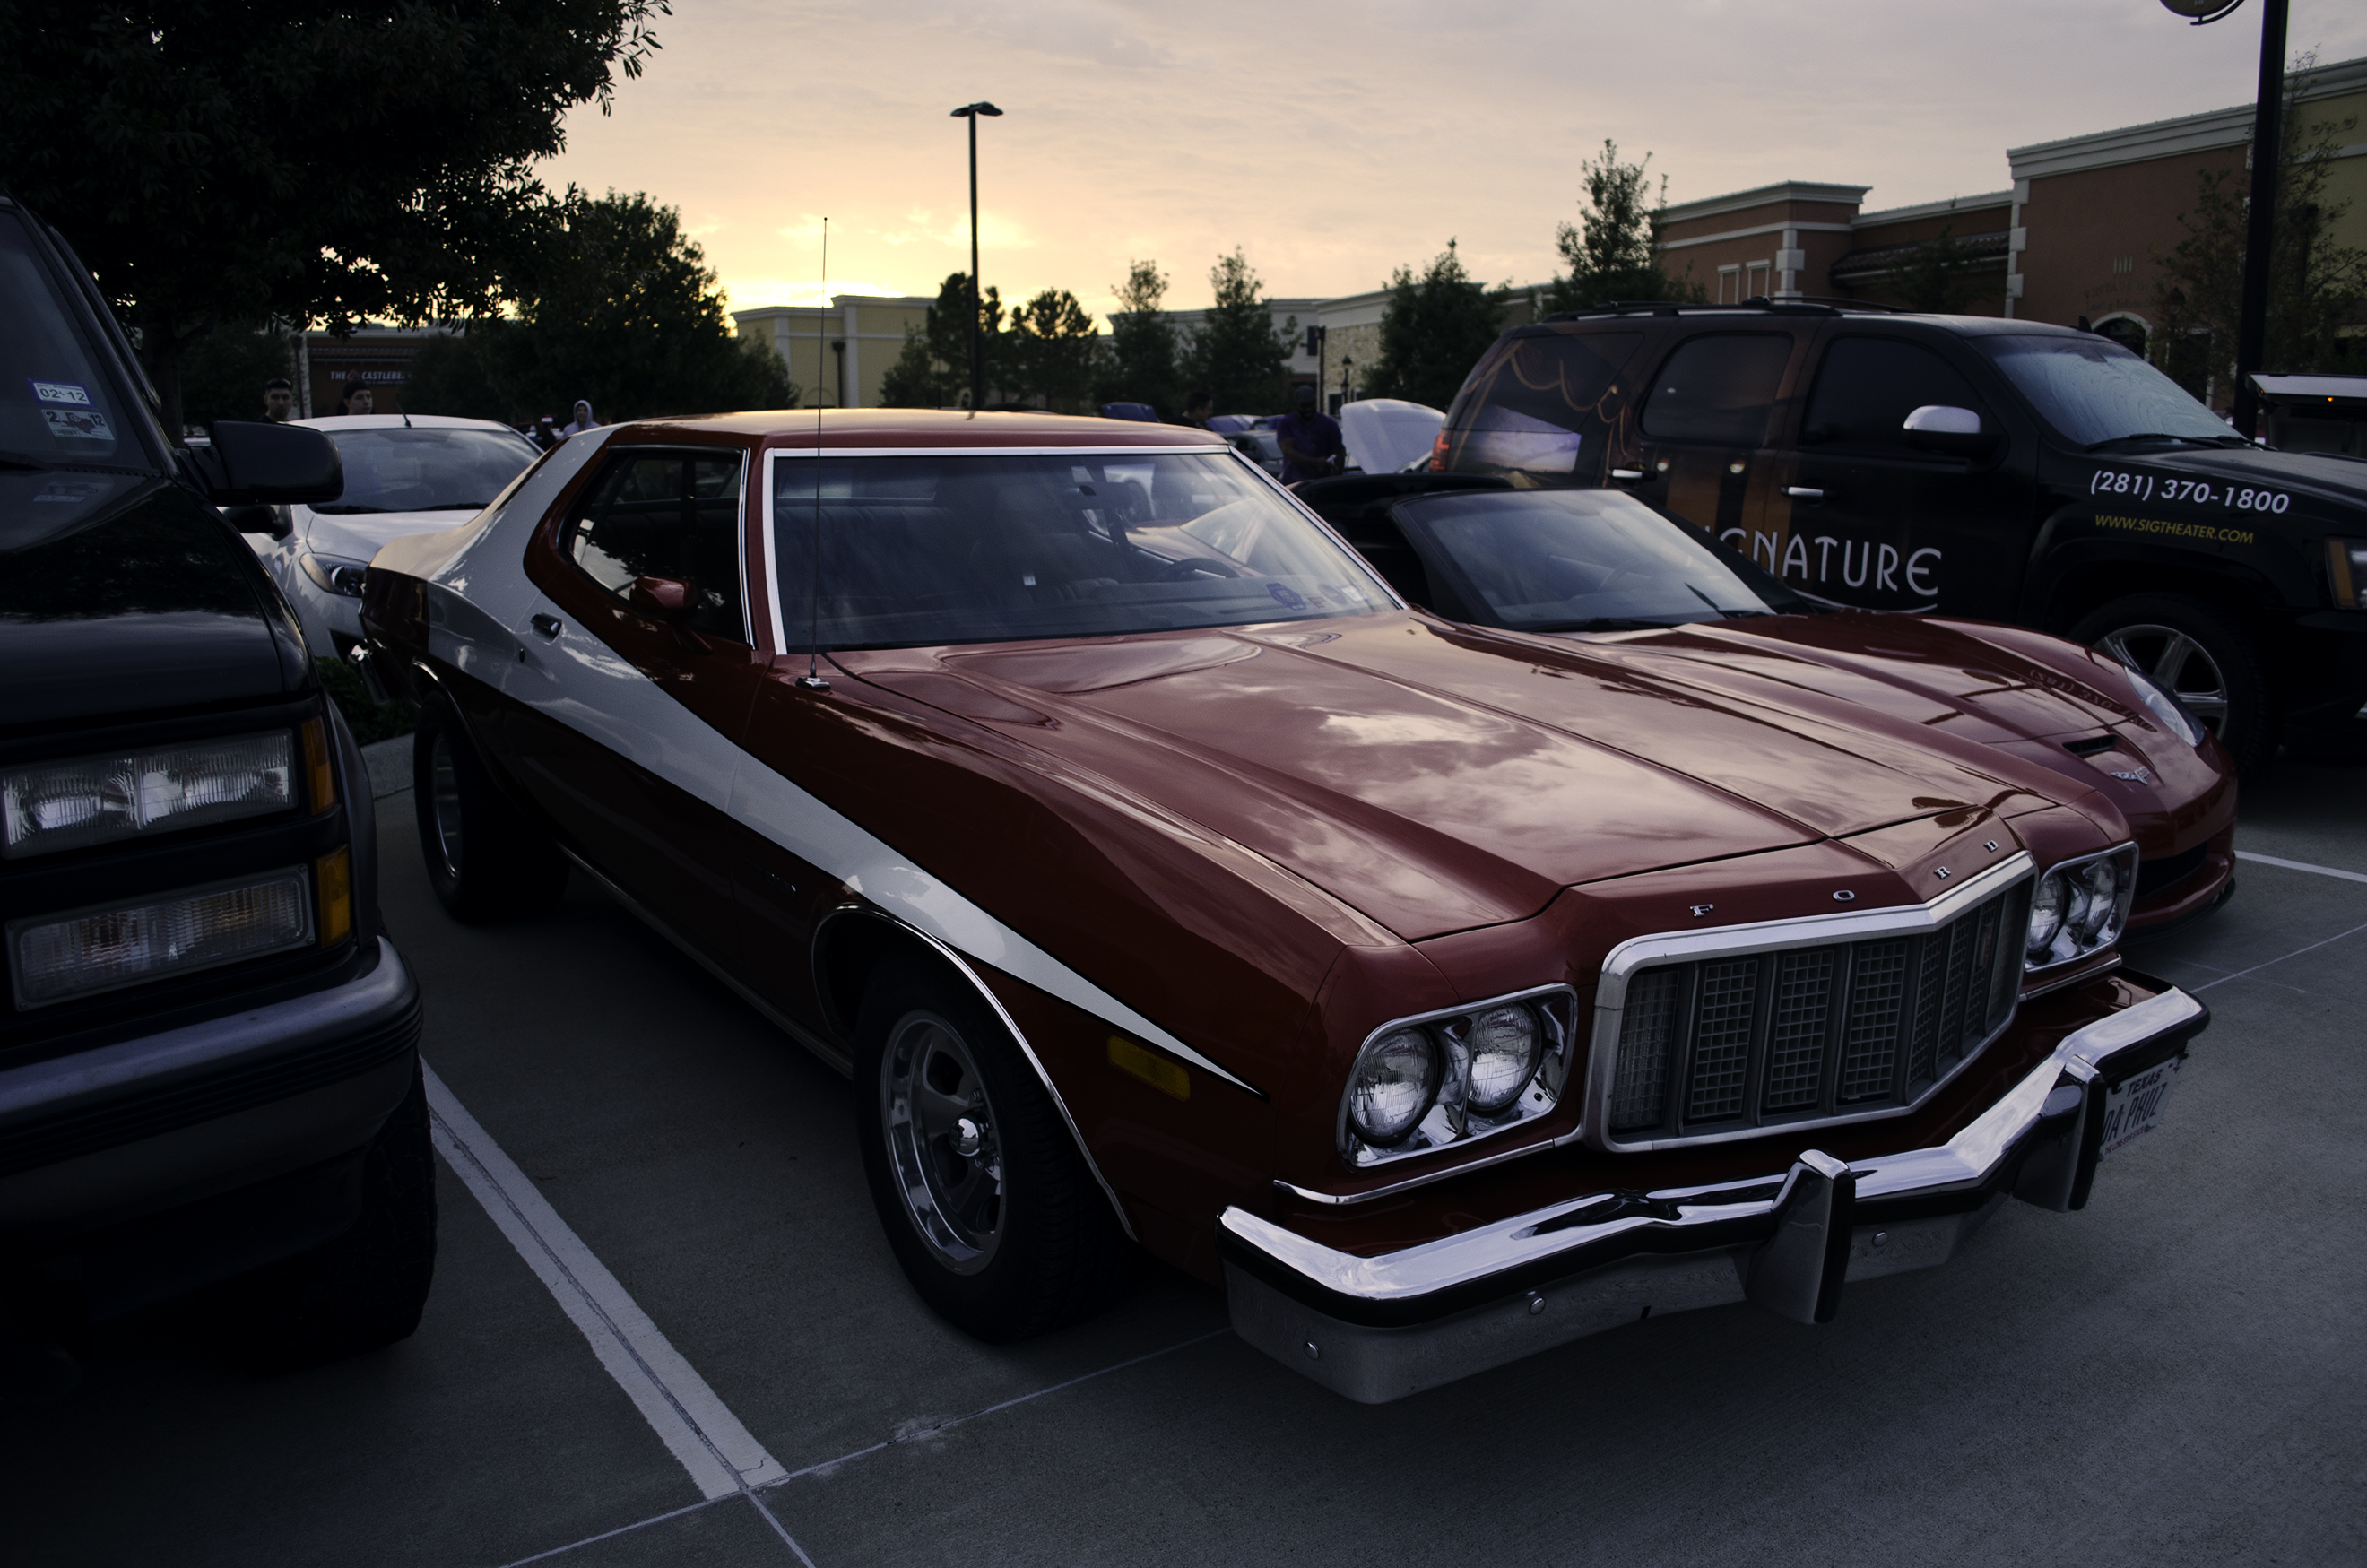 file029 ford gran torino flickr price photographyjpg